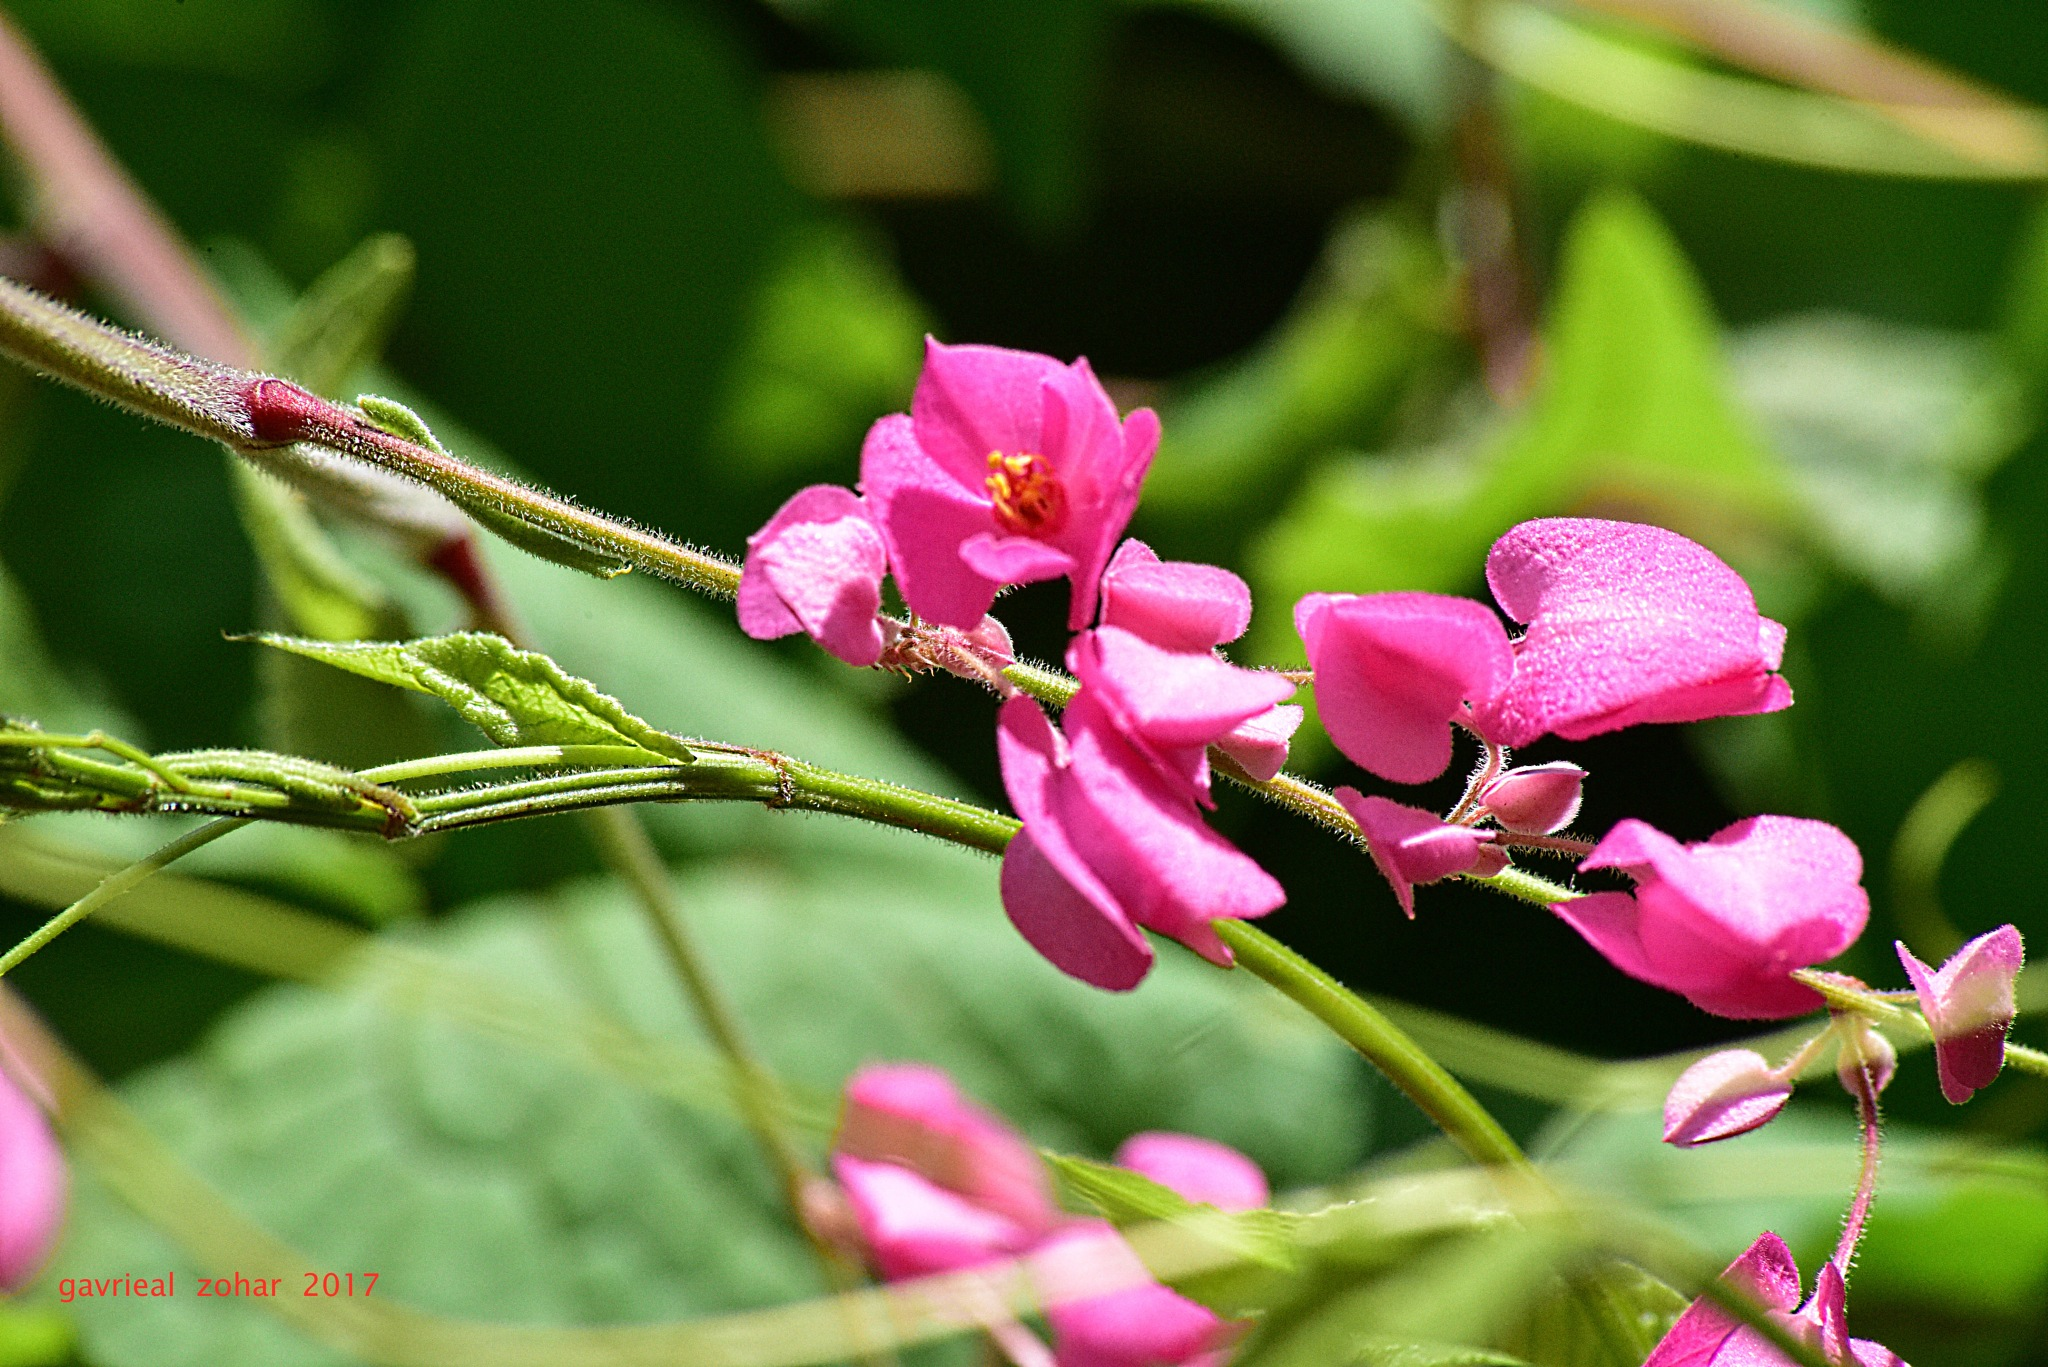 pink creeper flowers by gavriealzohar